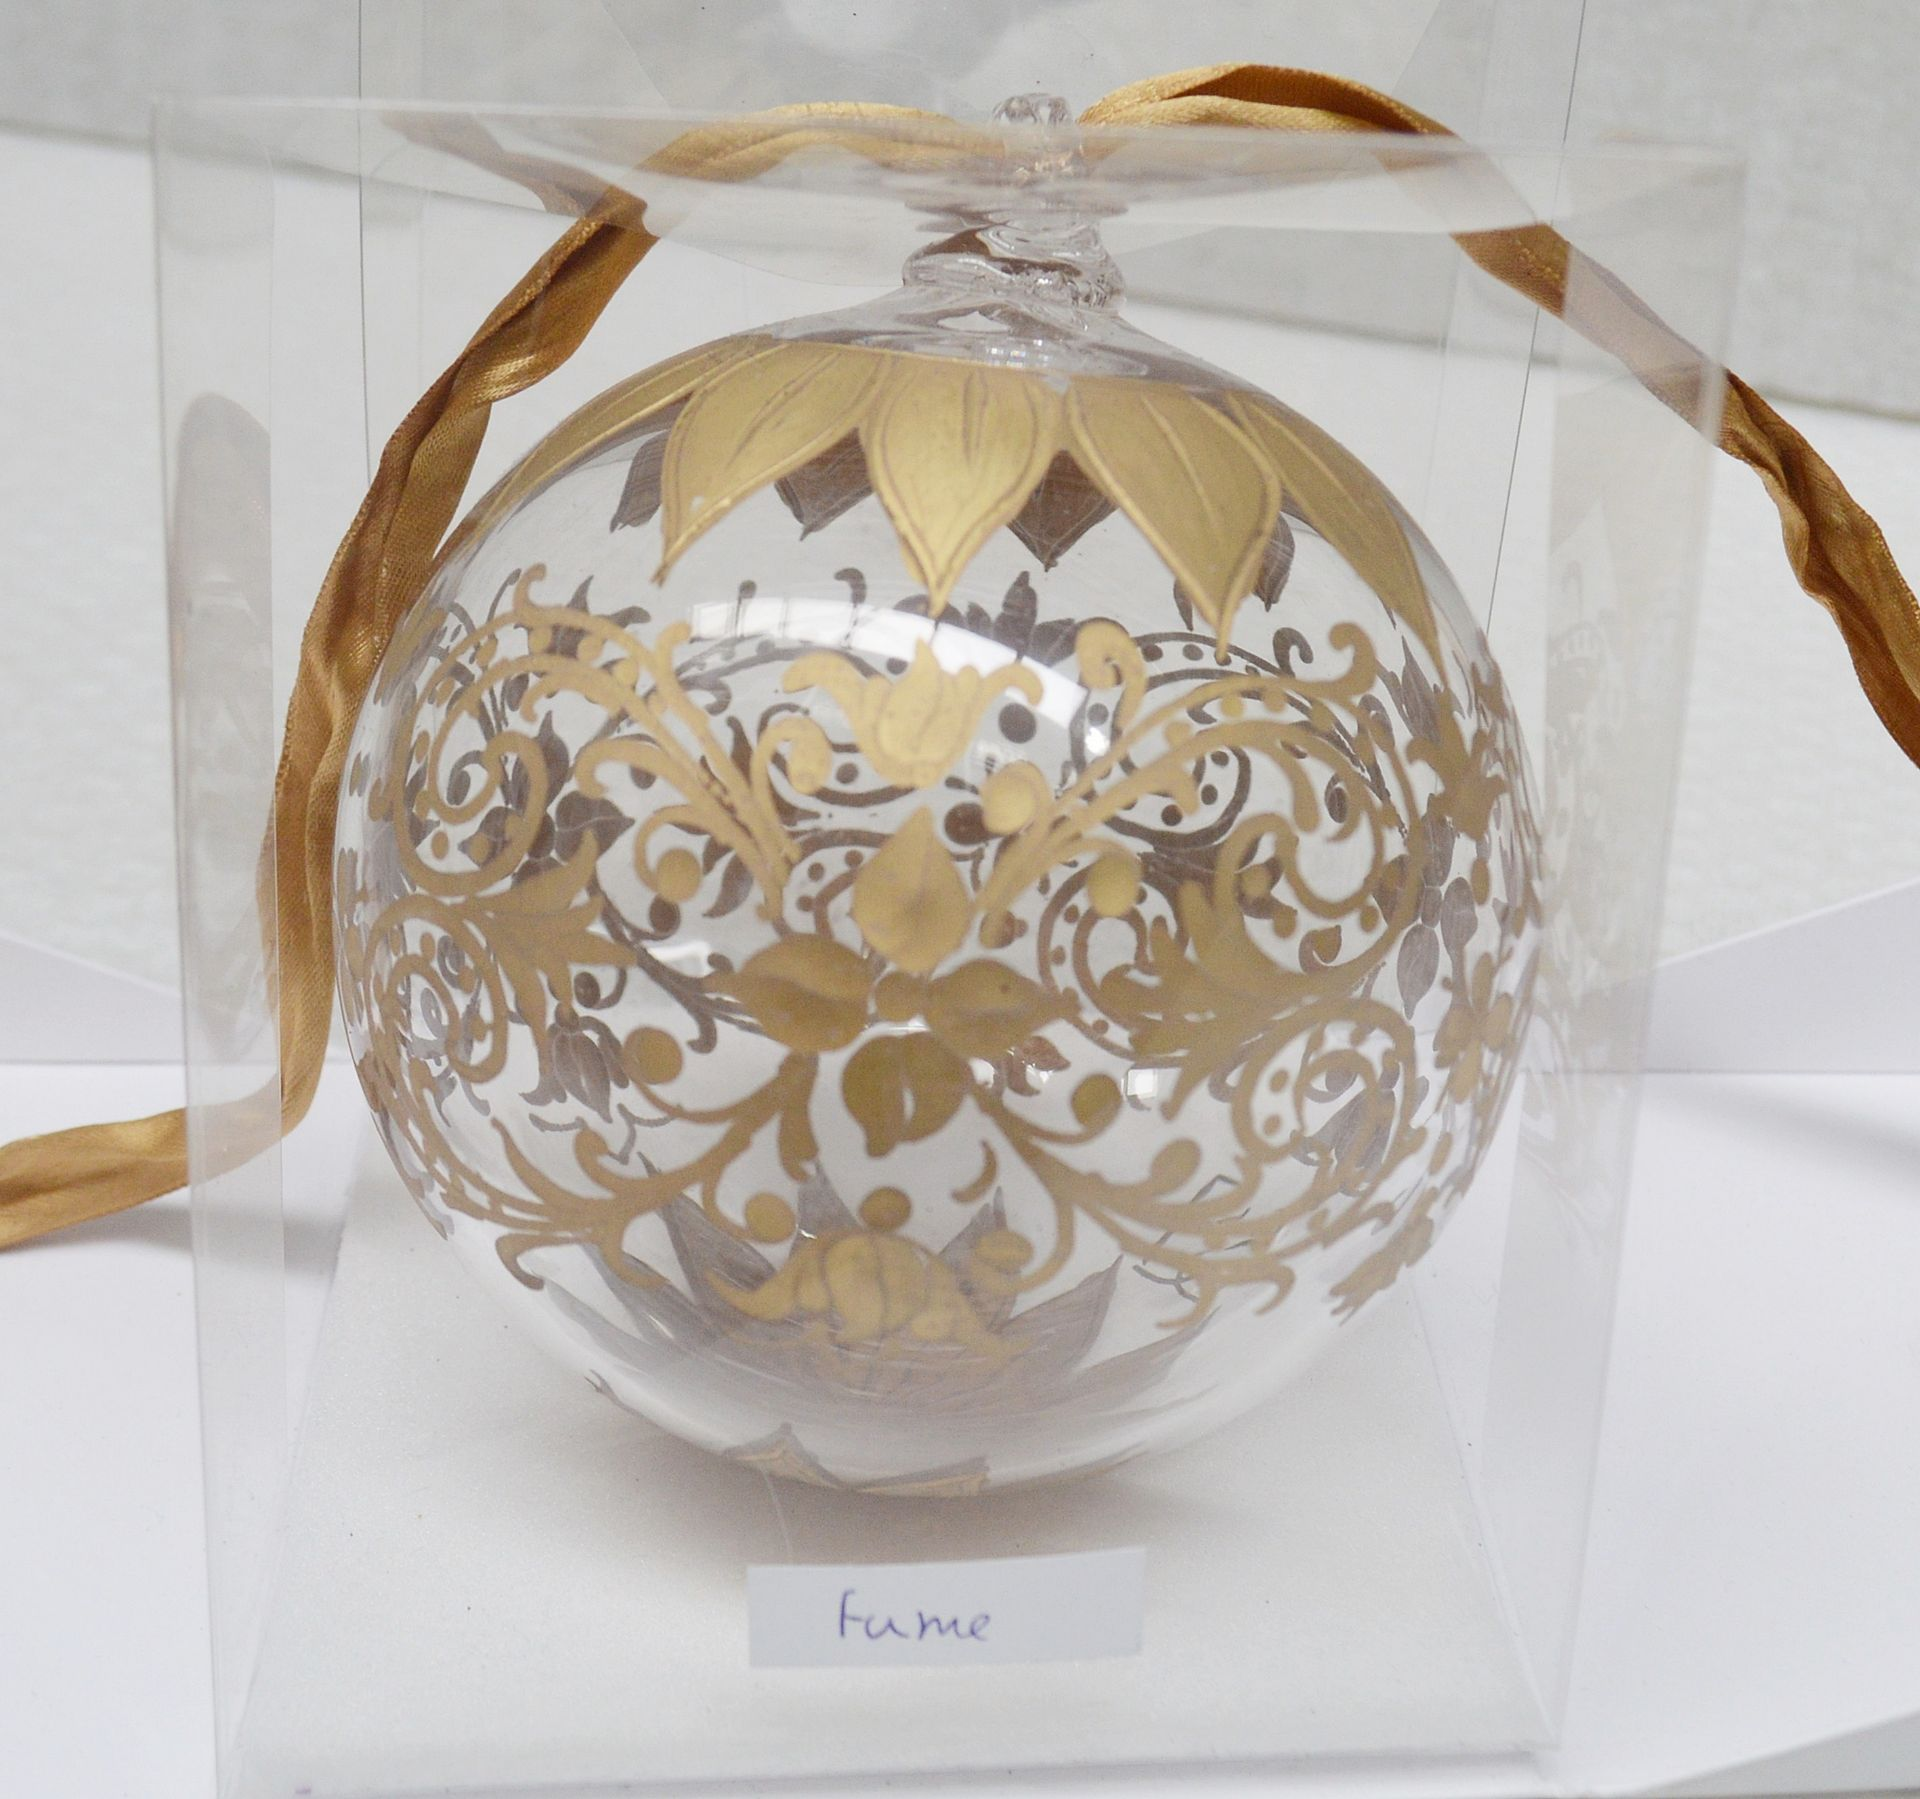 1 x BALDI 'Home Jewels' Italian Hand-crafted Artisan Christmas Tree Decoration In Gold - RRP £124.00 - Image 4 of 4